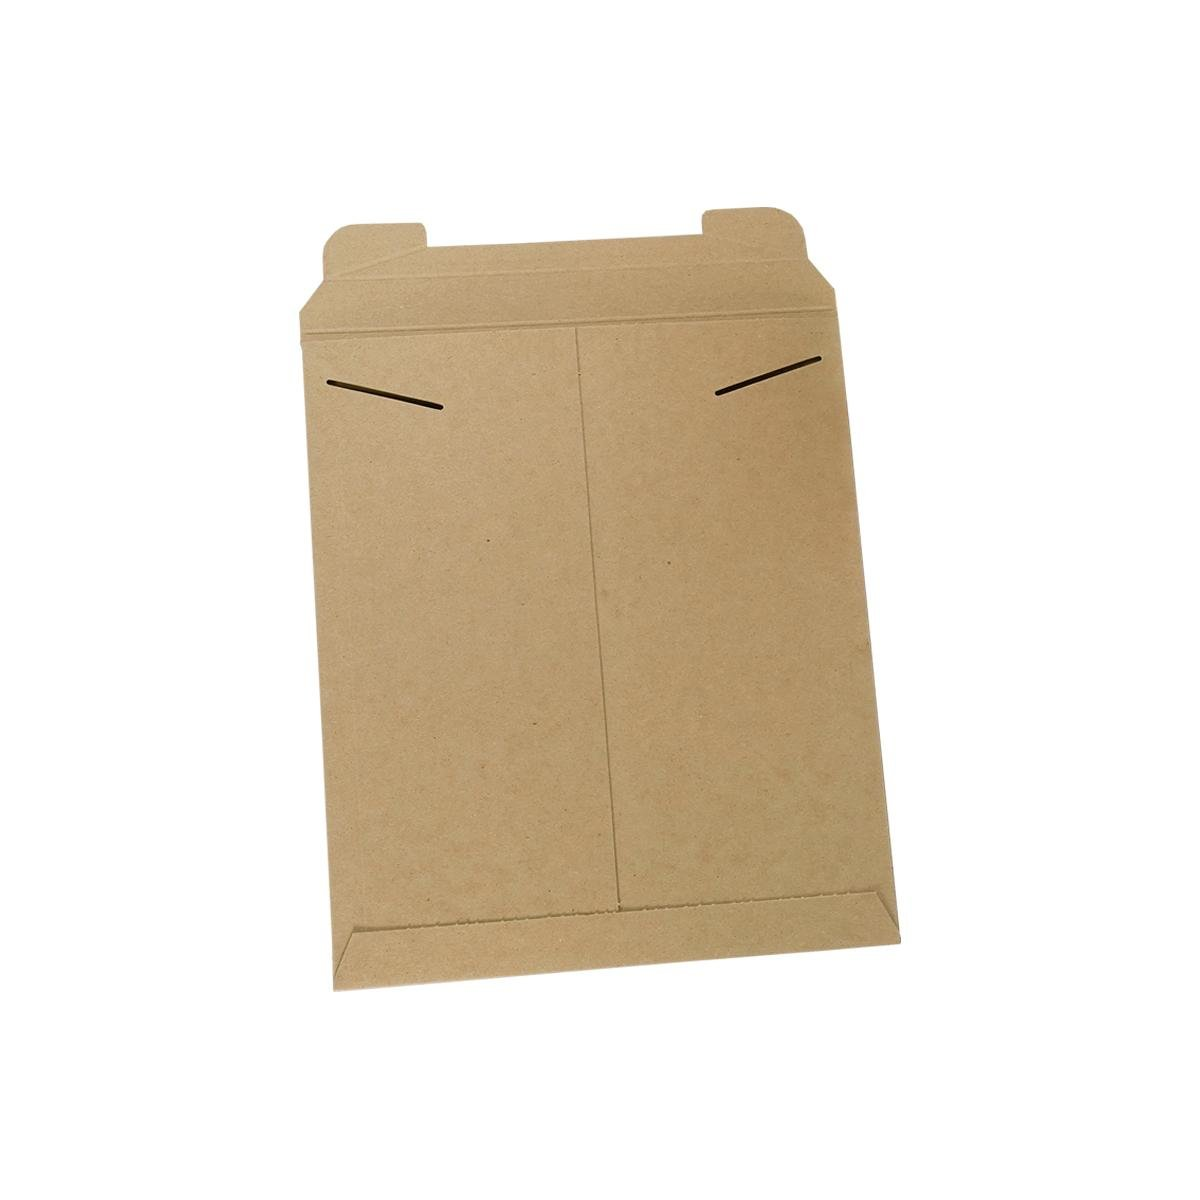 Sturdy envelope for transit or shipping.